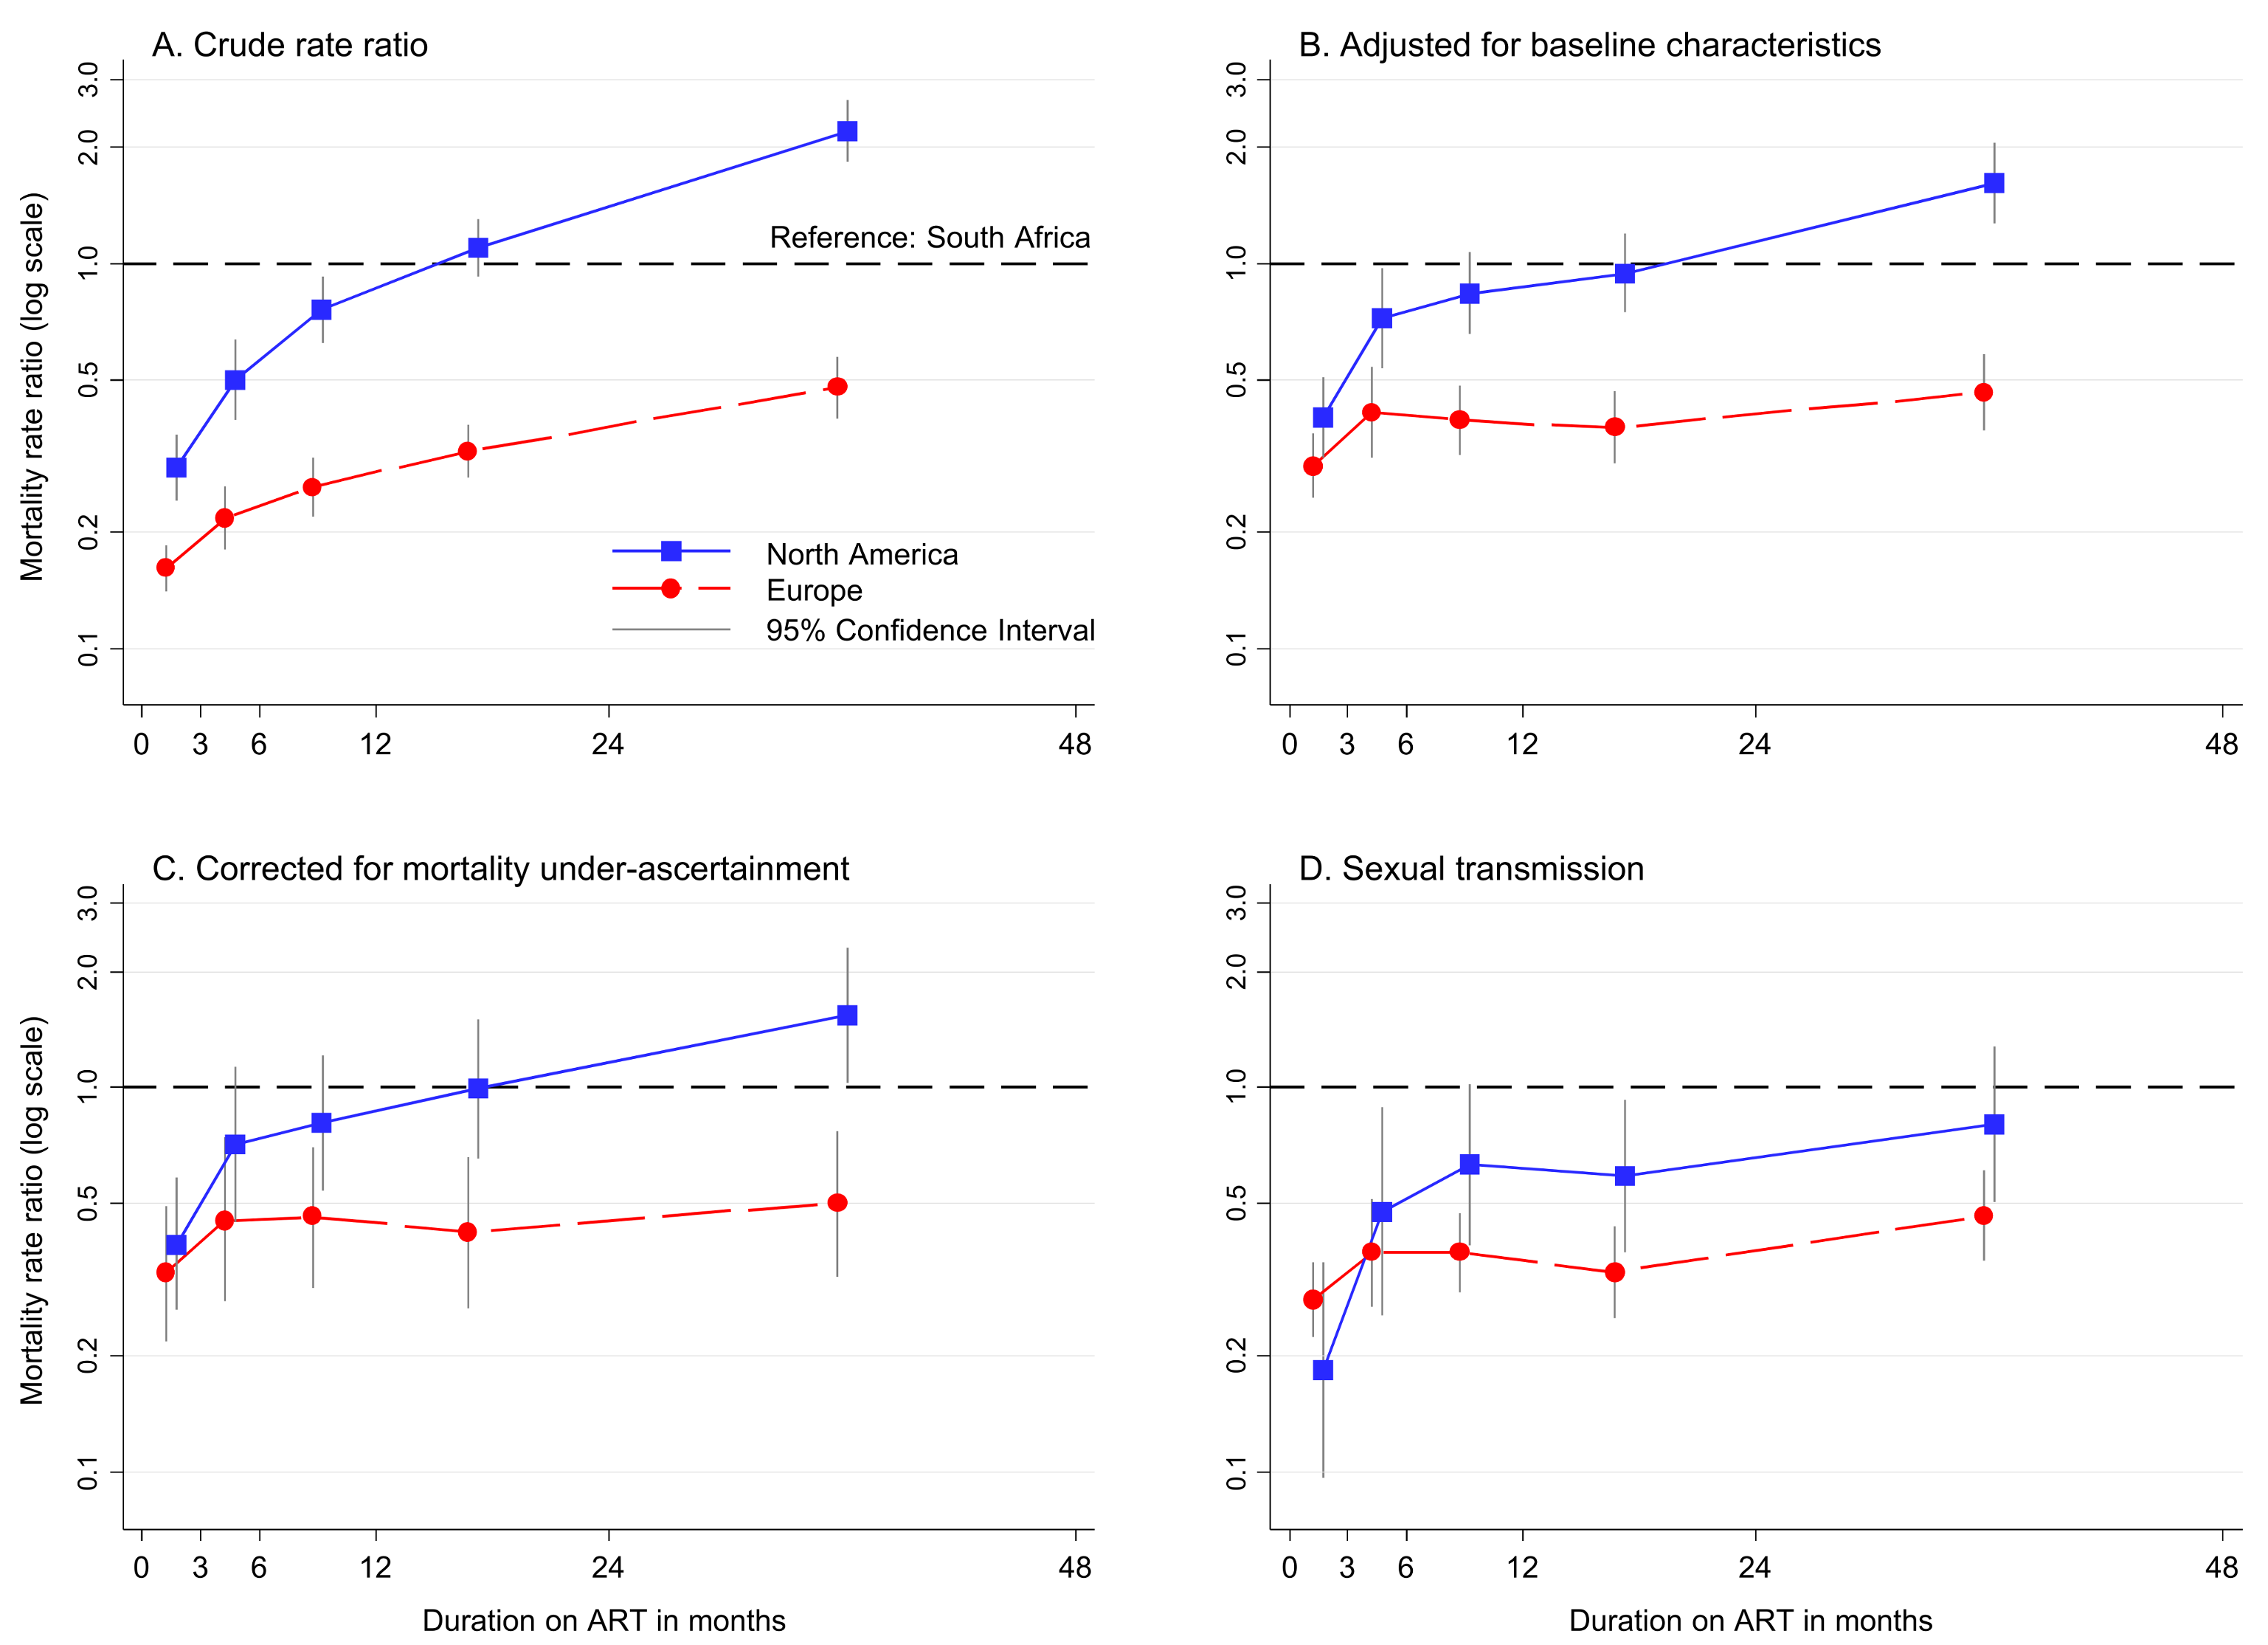 Relative mortality by region and duration on ART comparing European and North American cohorts to South Africa. (A) Crude rates, (B) adjusted for baseline covariates*, (C) corrected for cohort-assessed mortality under-ascertainment** and adjusted for baseline covariates, and (D) limited in Europe and North America to patients with sexual acquisition of HIV, adjusted for baseline covariates.